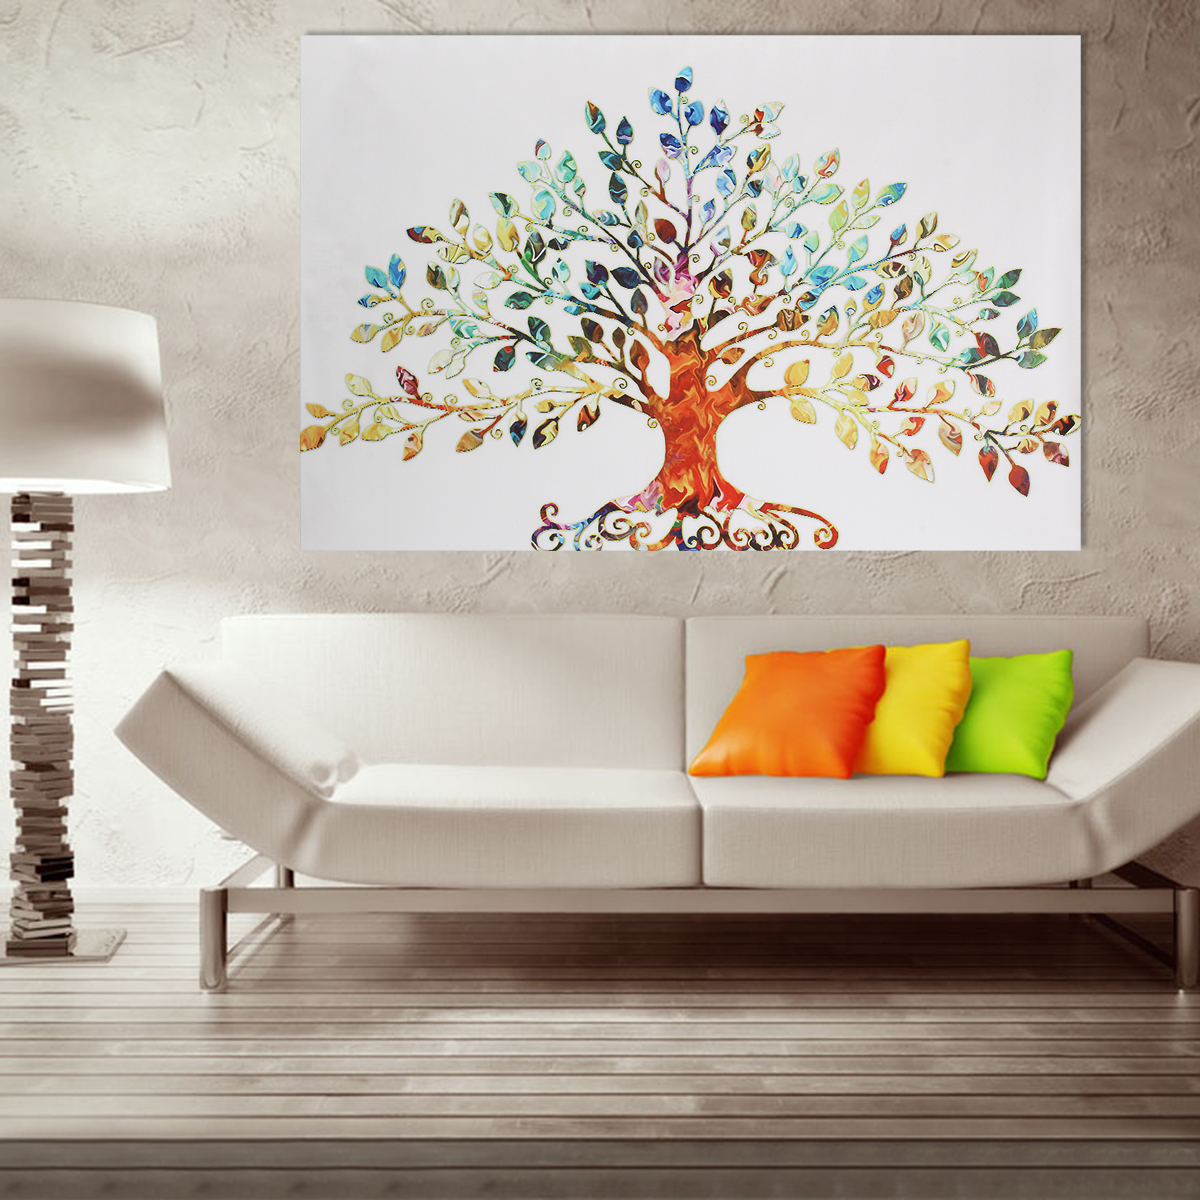 75x50cm Picture Abstract Colorful Leafy Tree Unframed Canvas Print Wall Art Home Decoration Alexnld Com